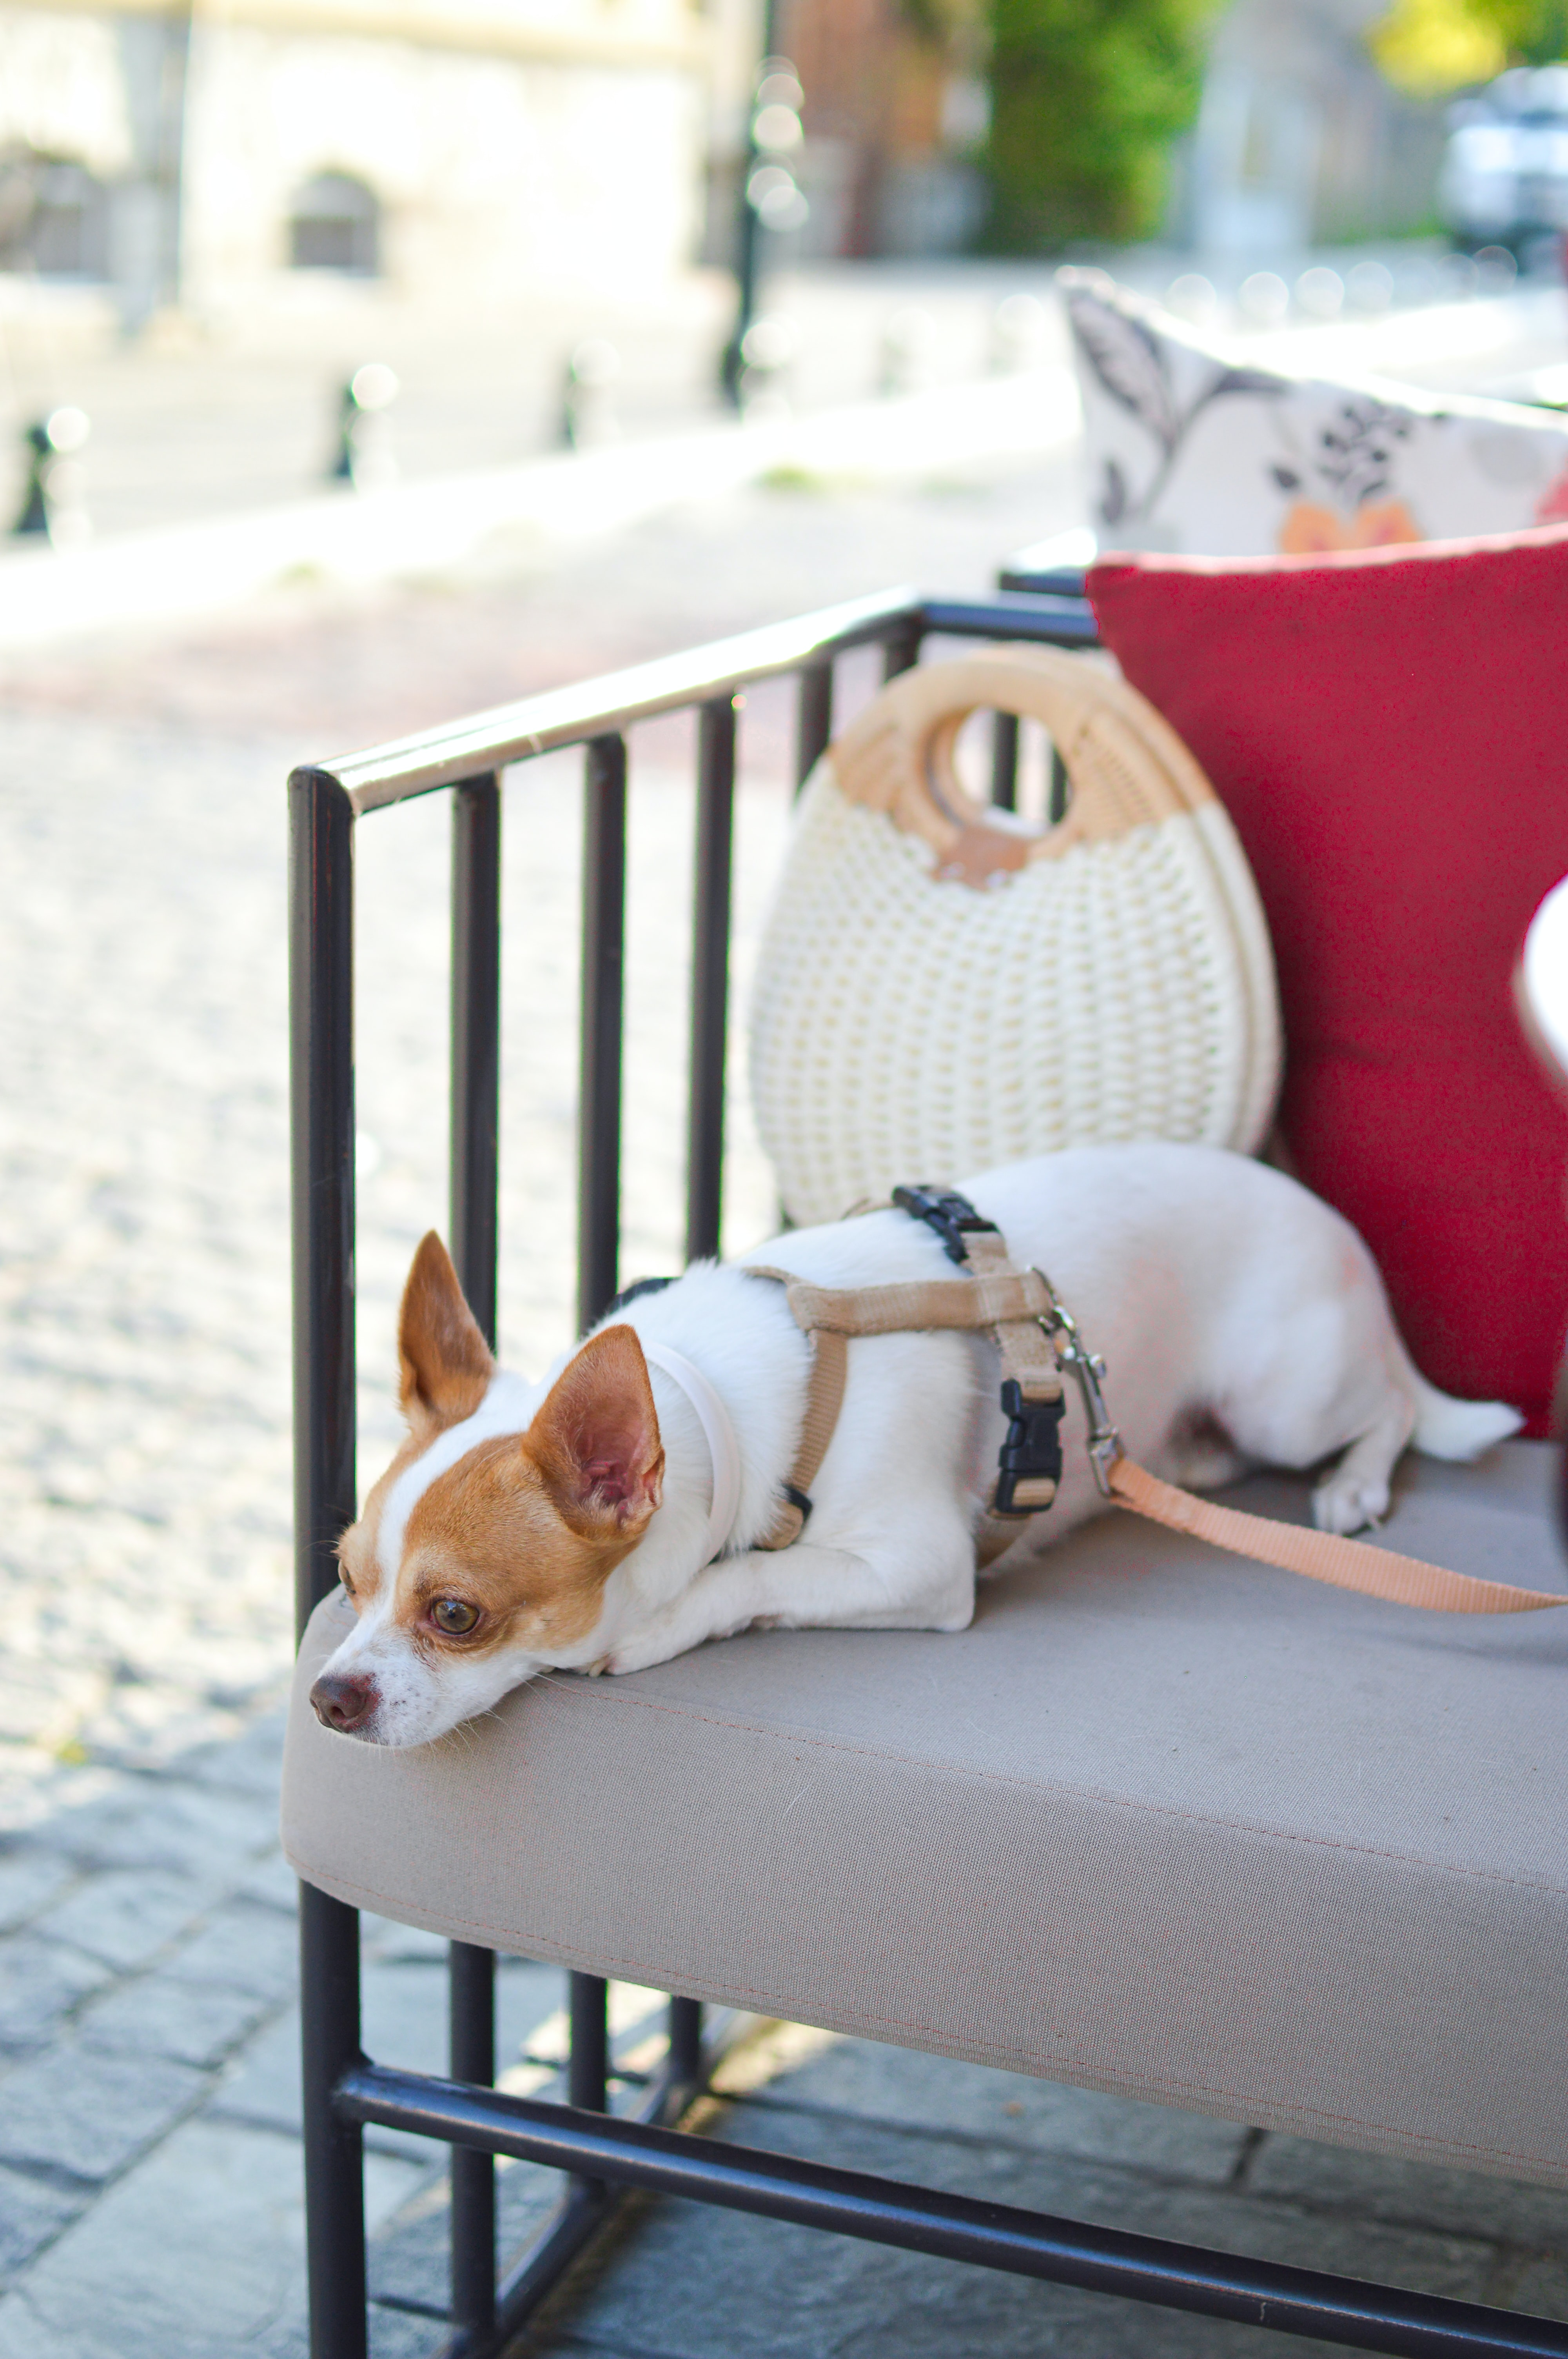 short-coated white and brown dog laying down on bench